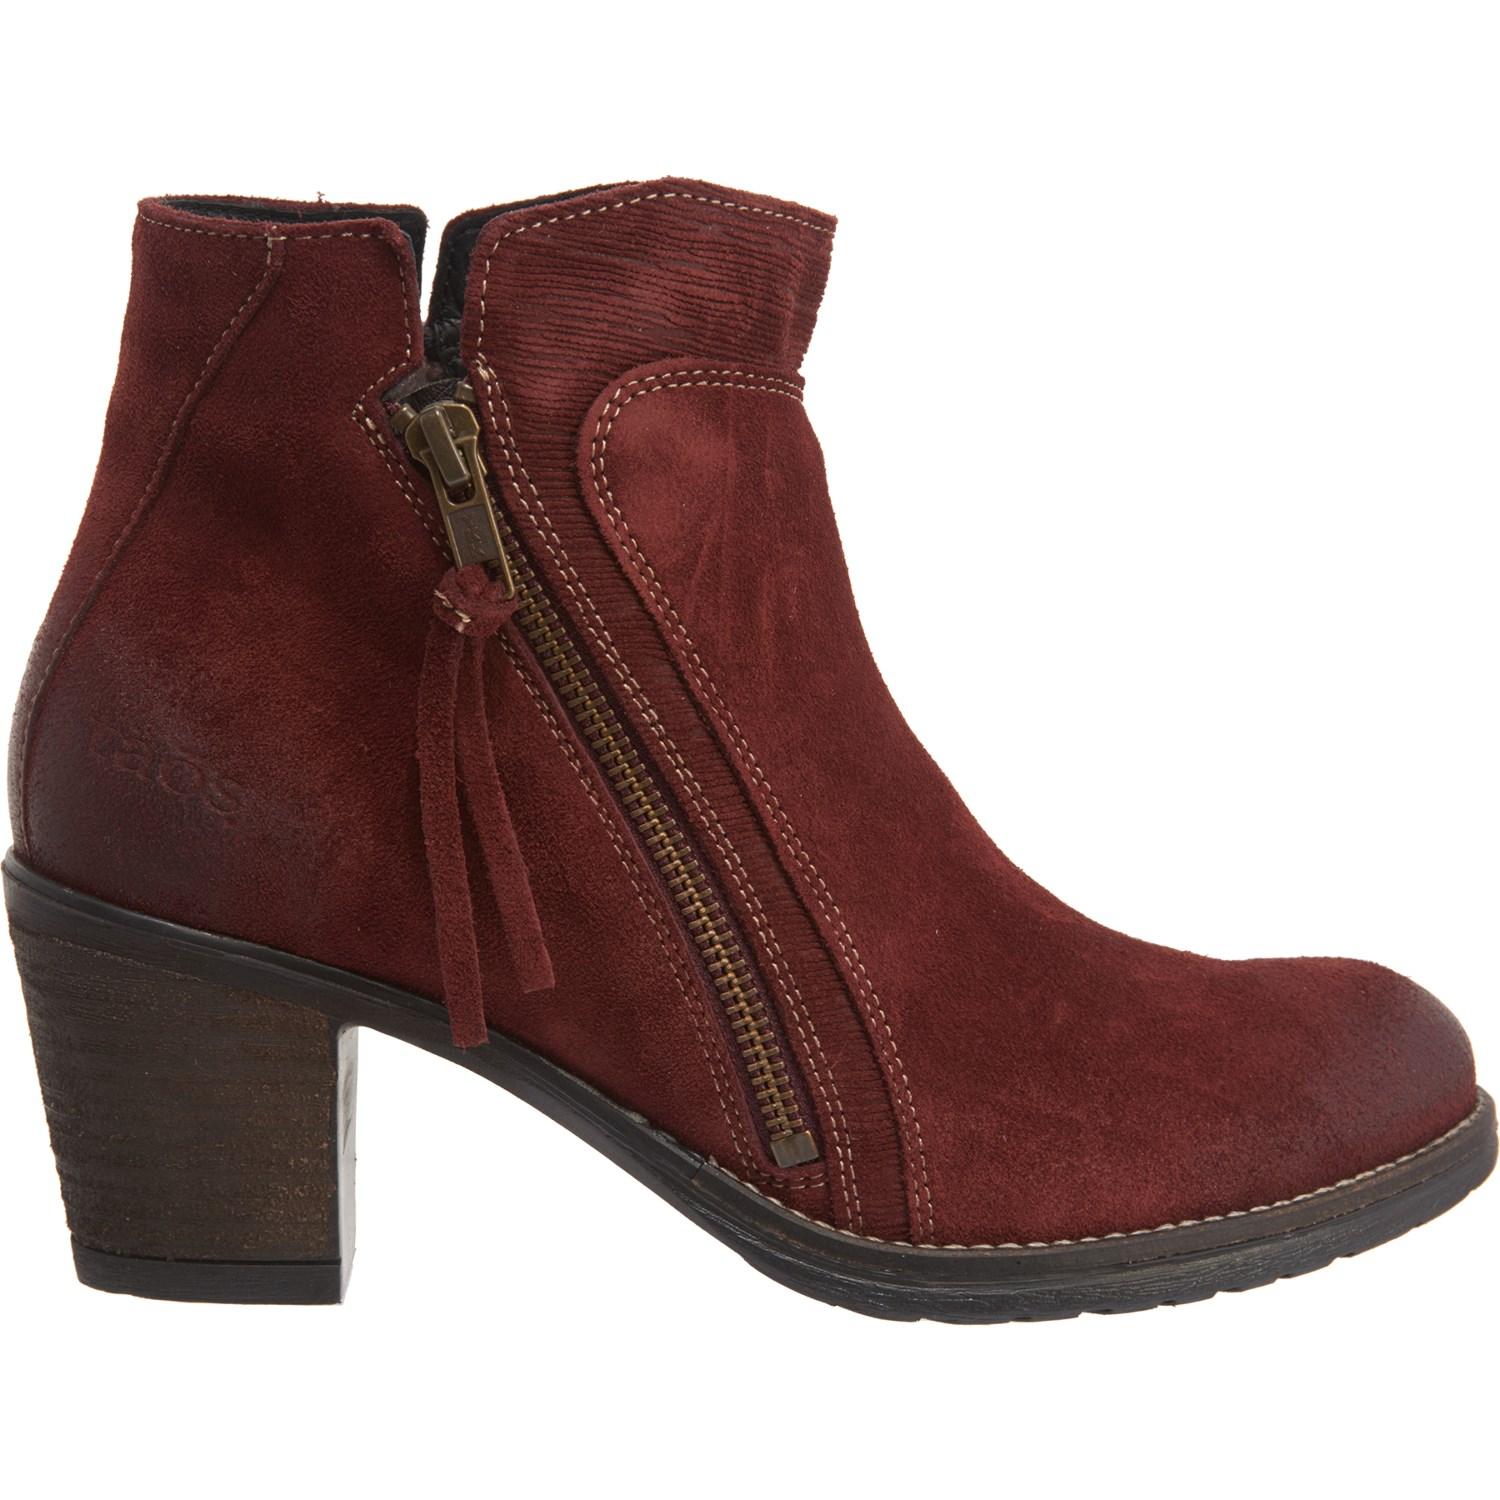 Taos Footwear Made in Portugal Dillie Booties Suede (For Women)